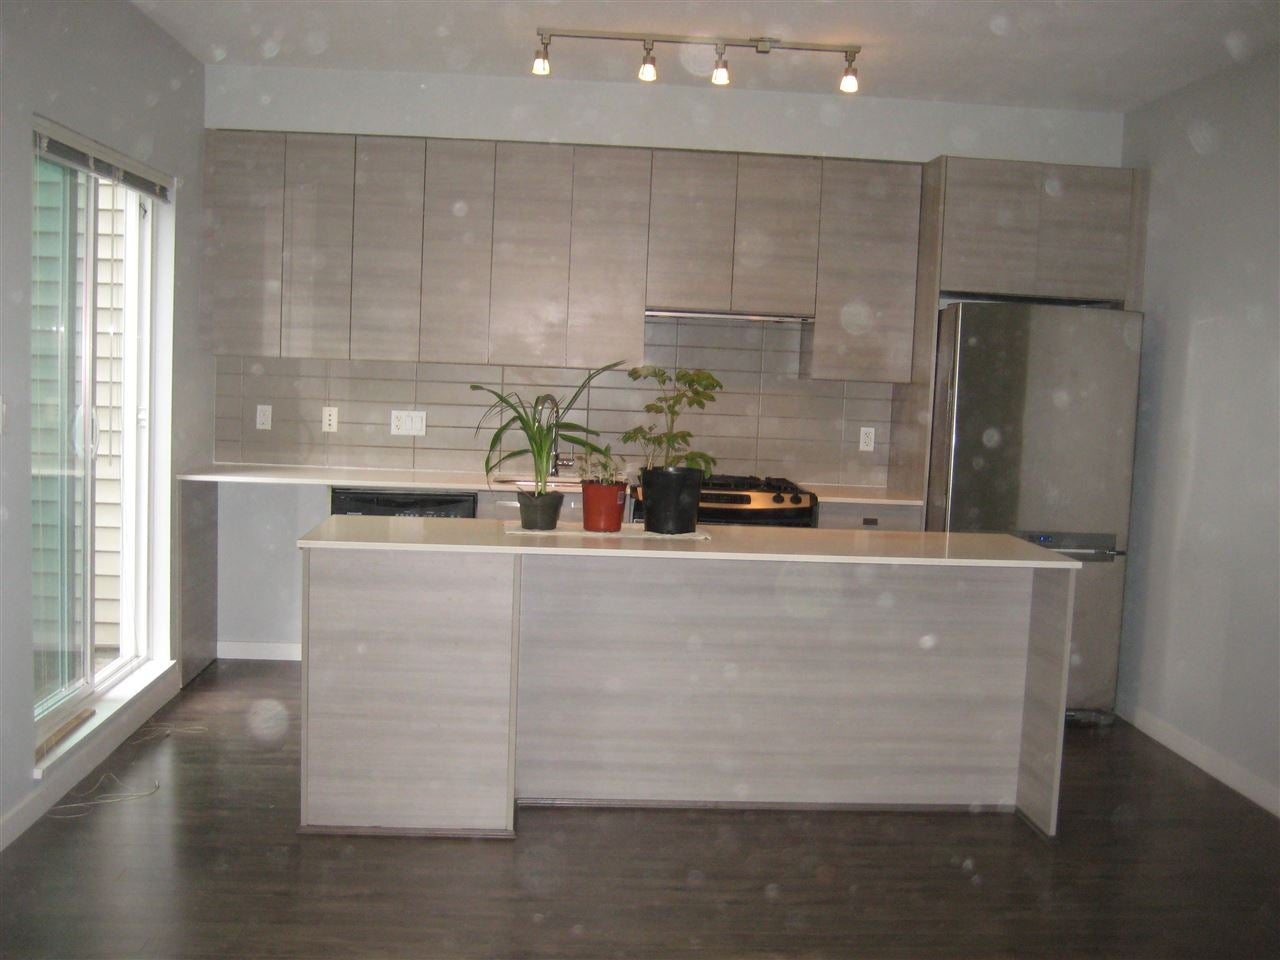 23 6965 HASTINGS STREET - Sperling-Duthie Apartment/Condo for sale, 2 Bedrooms (R2482053) - #5